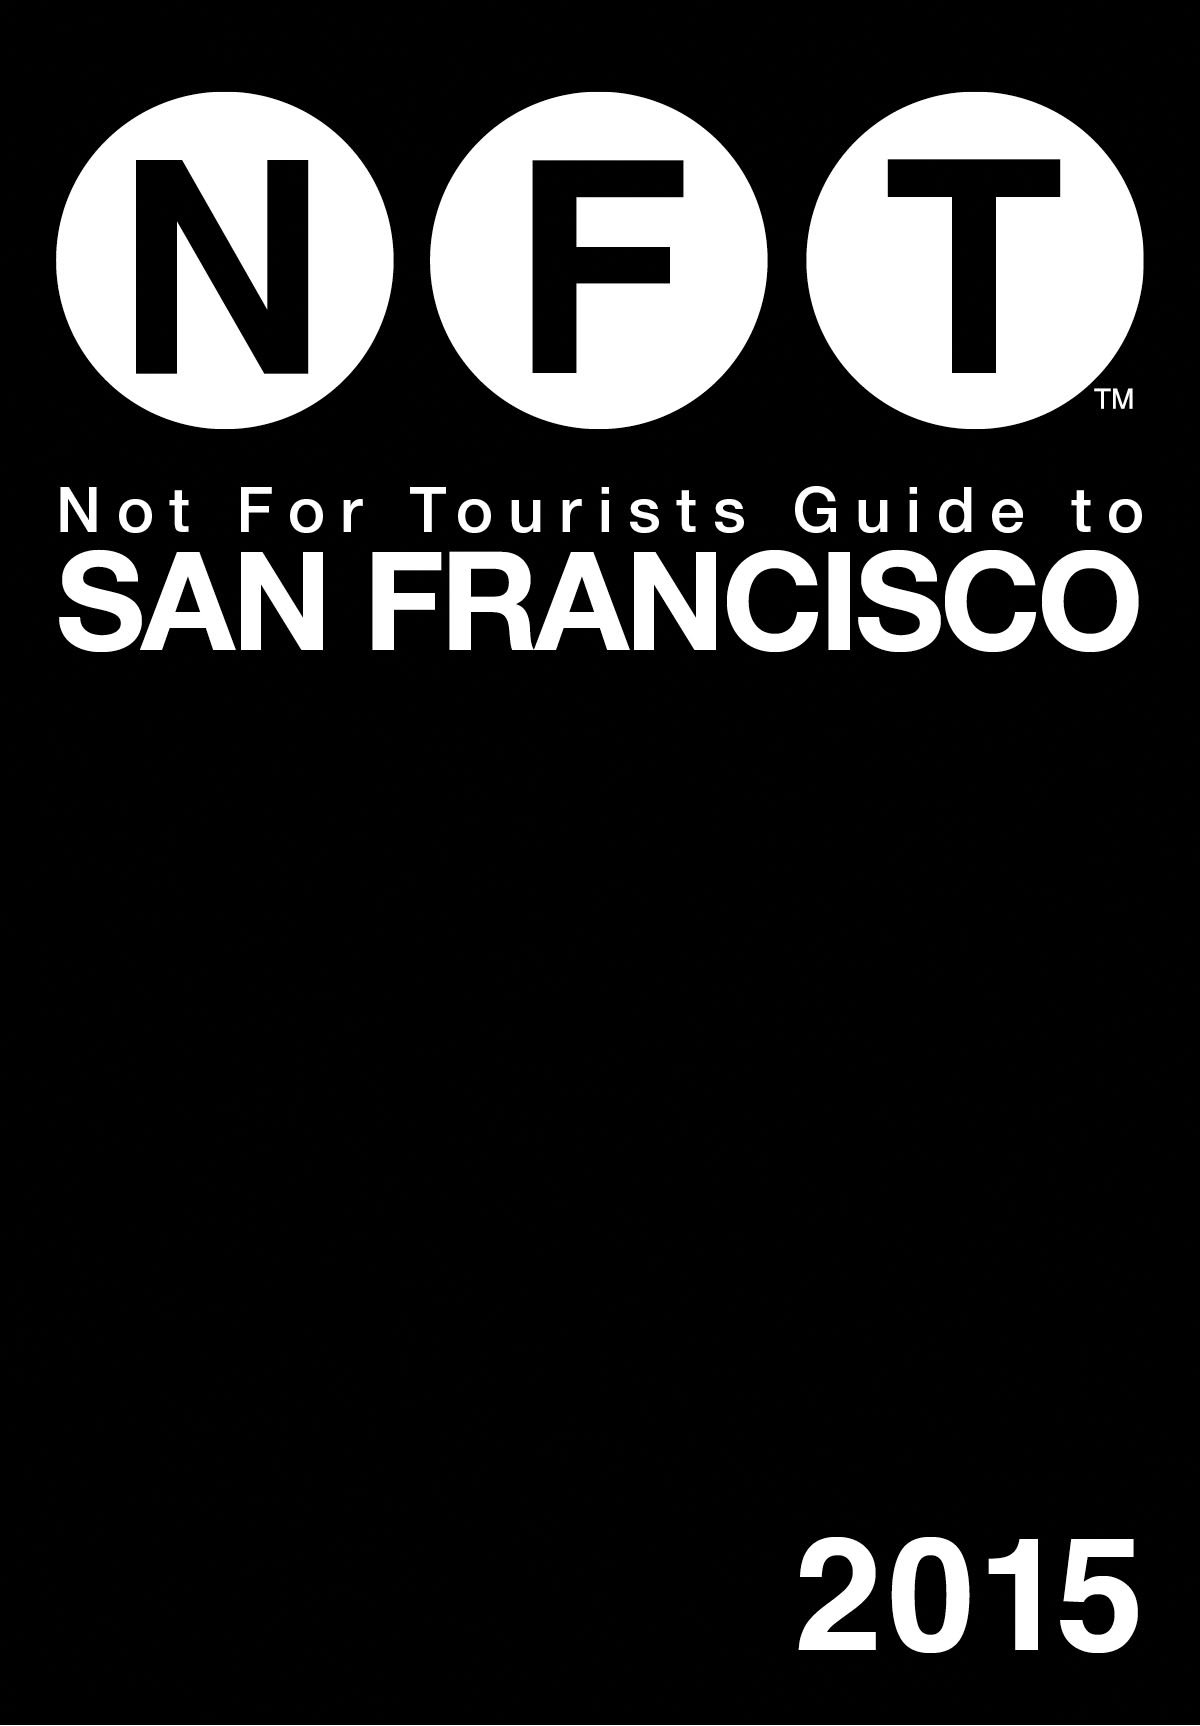 Not For Tourists Guide to San Francisco 2015 (Not for Tourists Guides)